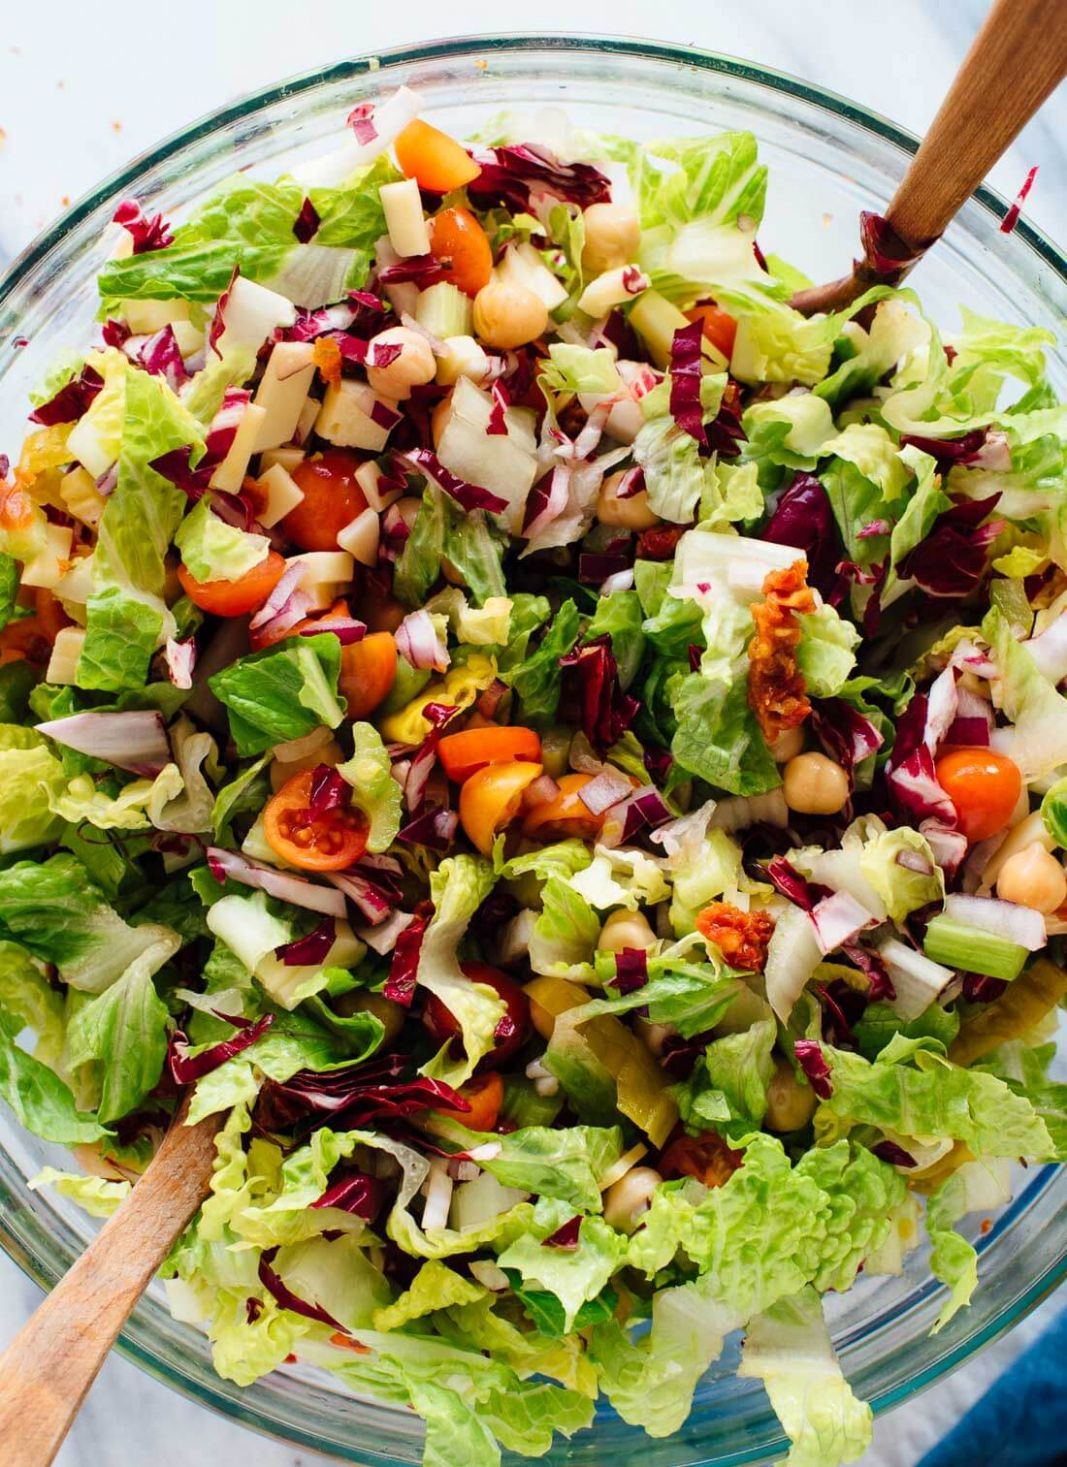 Vegetarian Italian Chopped Salad - Salad Recipes Veg For Dinner